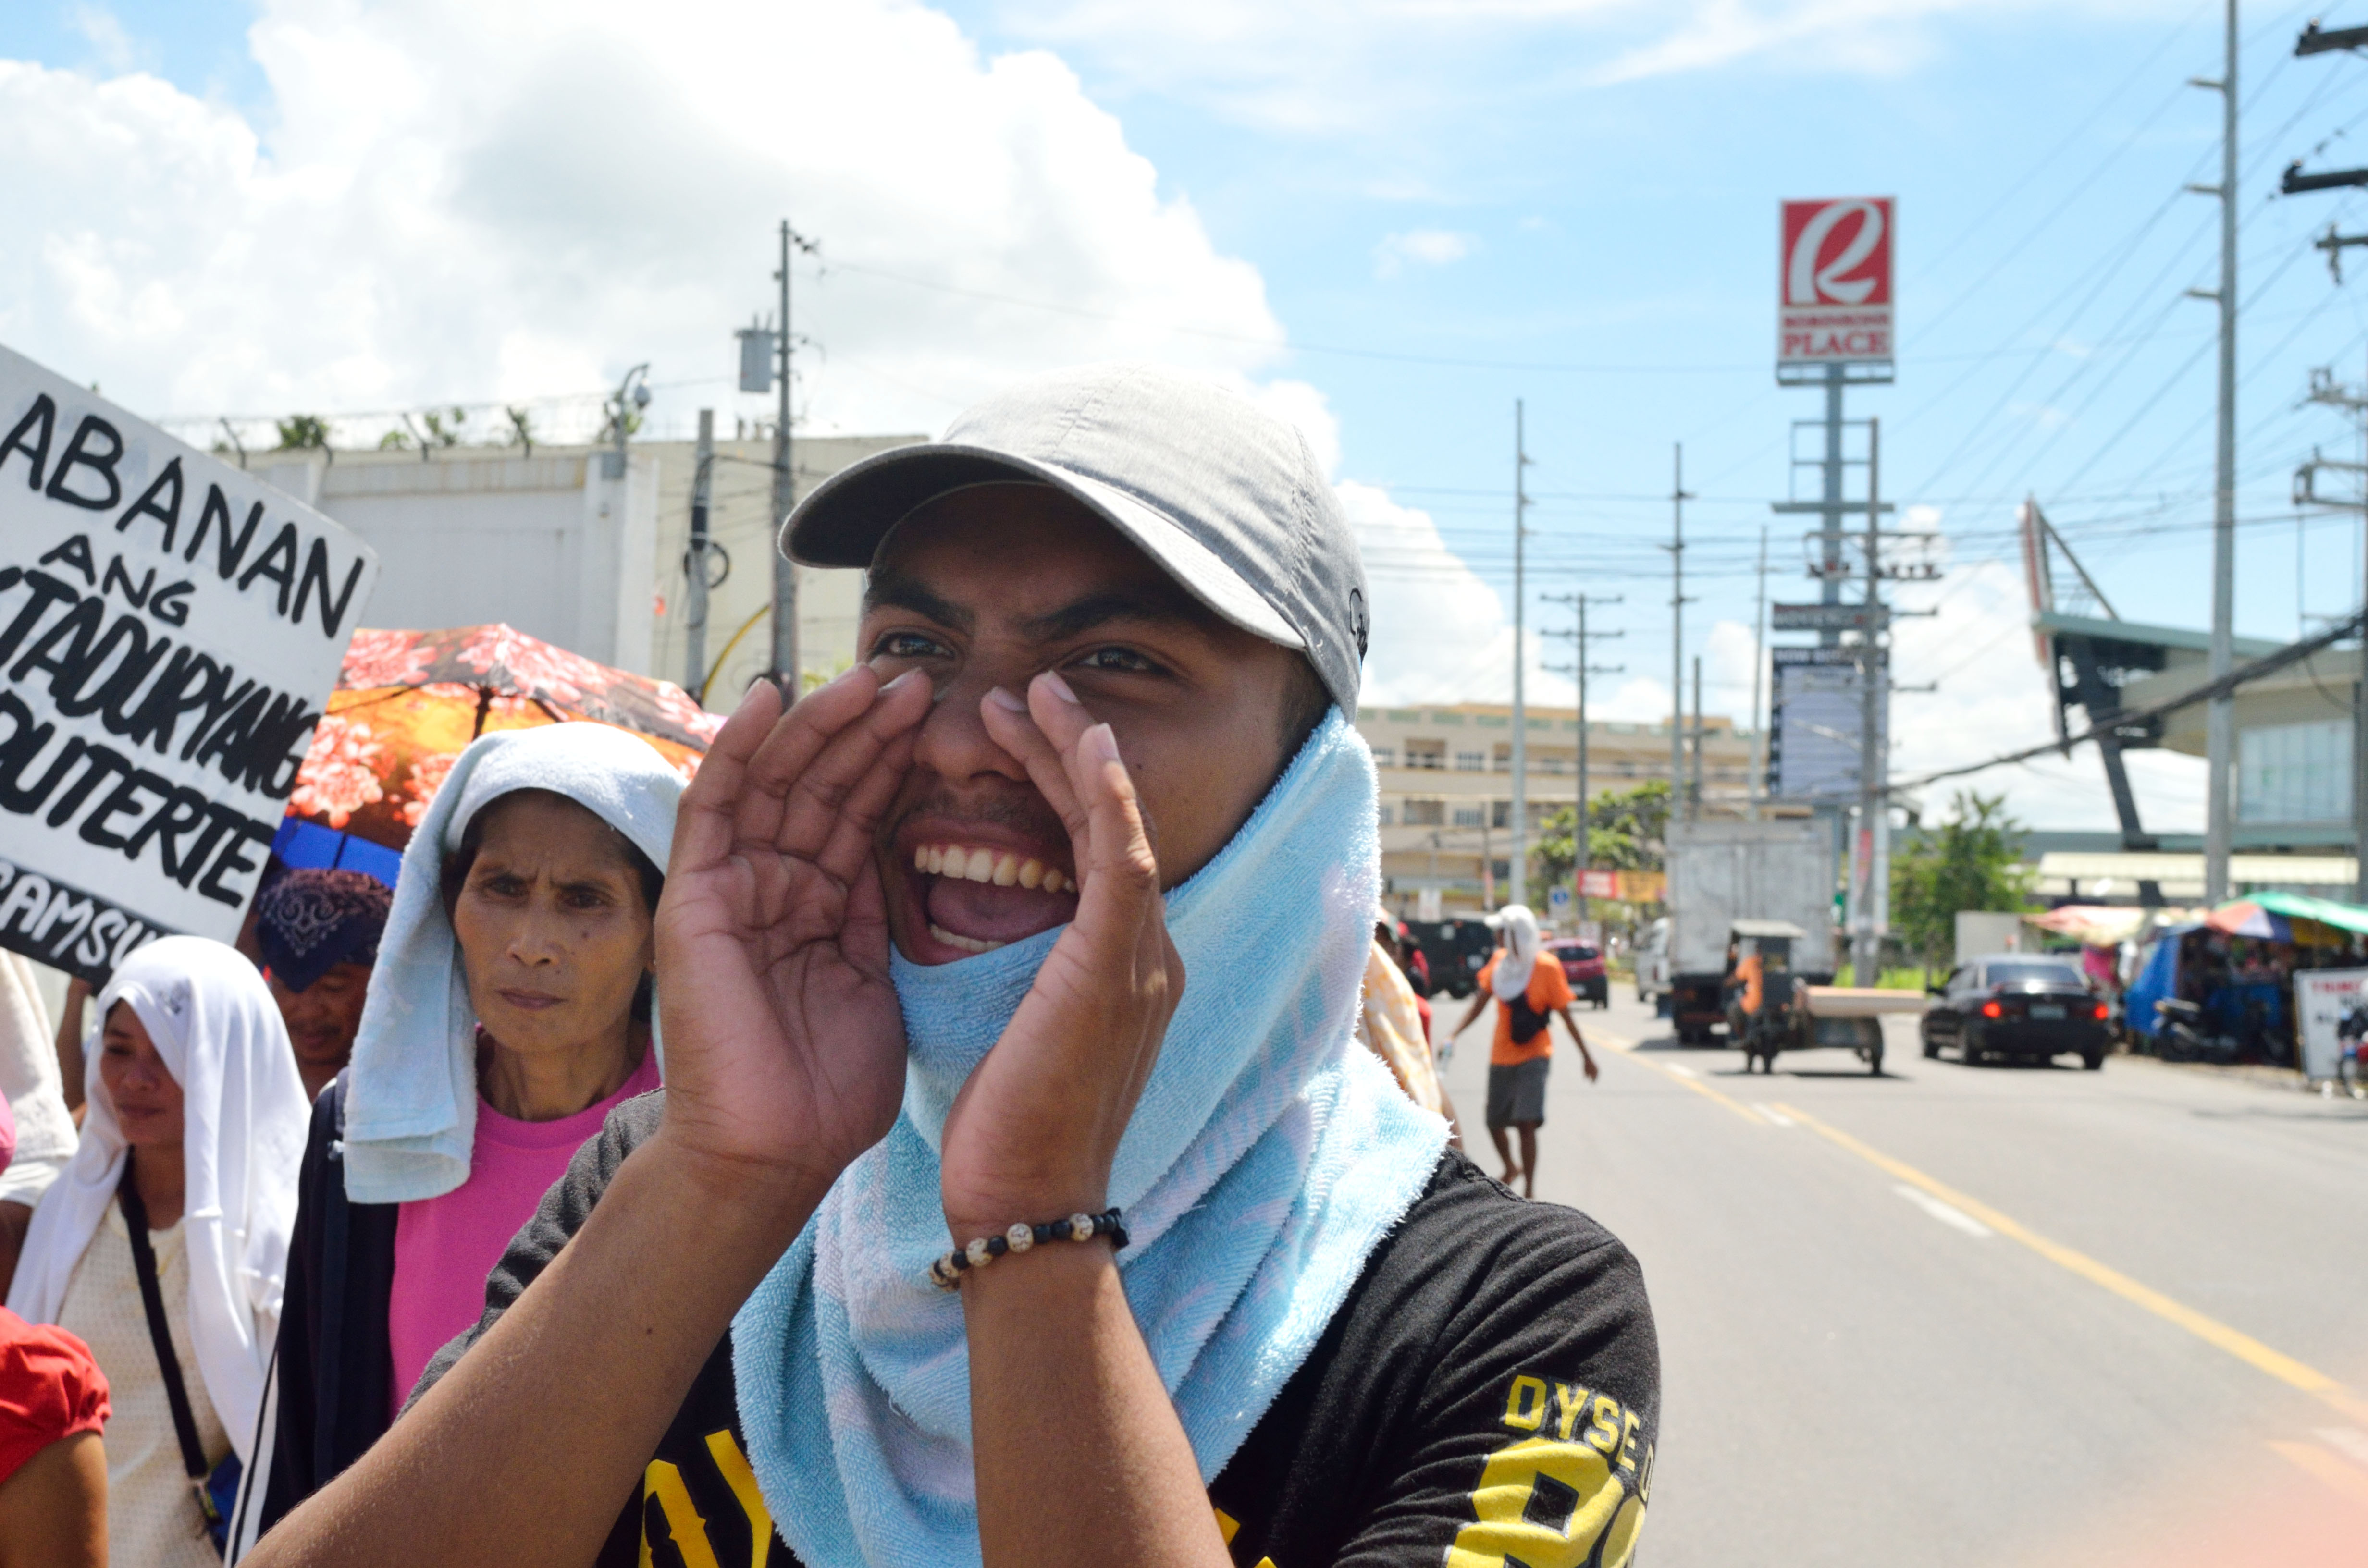 FIGHT DICTATORSHIP. Alex Guerro of the League of Filipino Students lead the chants during the protest. Photo by Miguel Imperial/Rappler